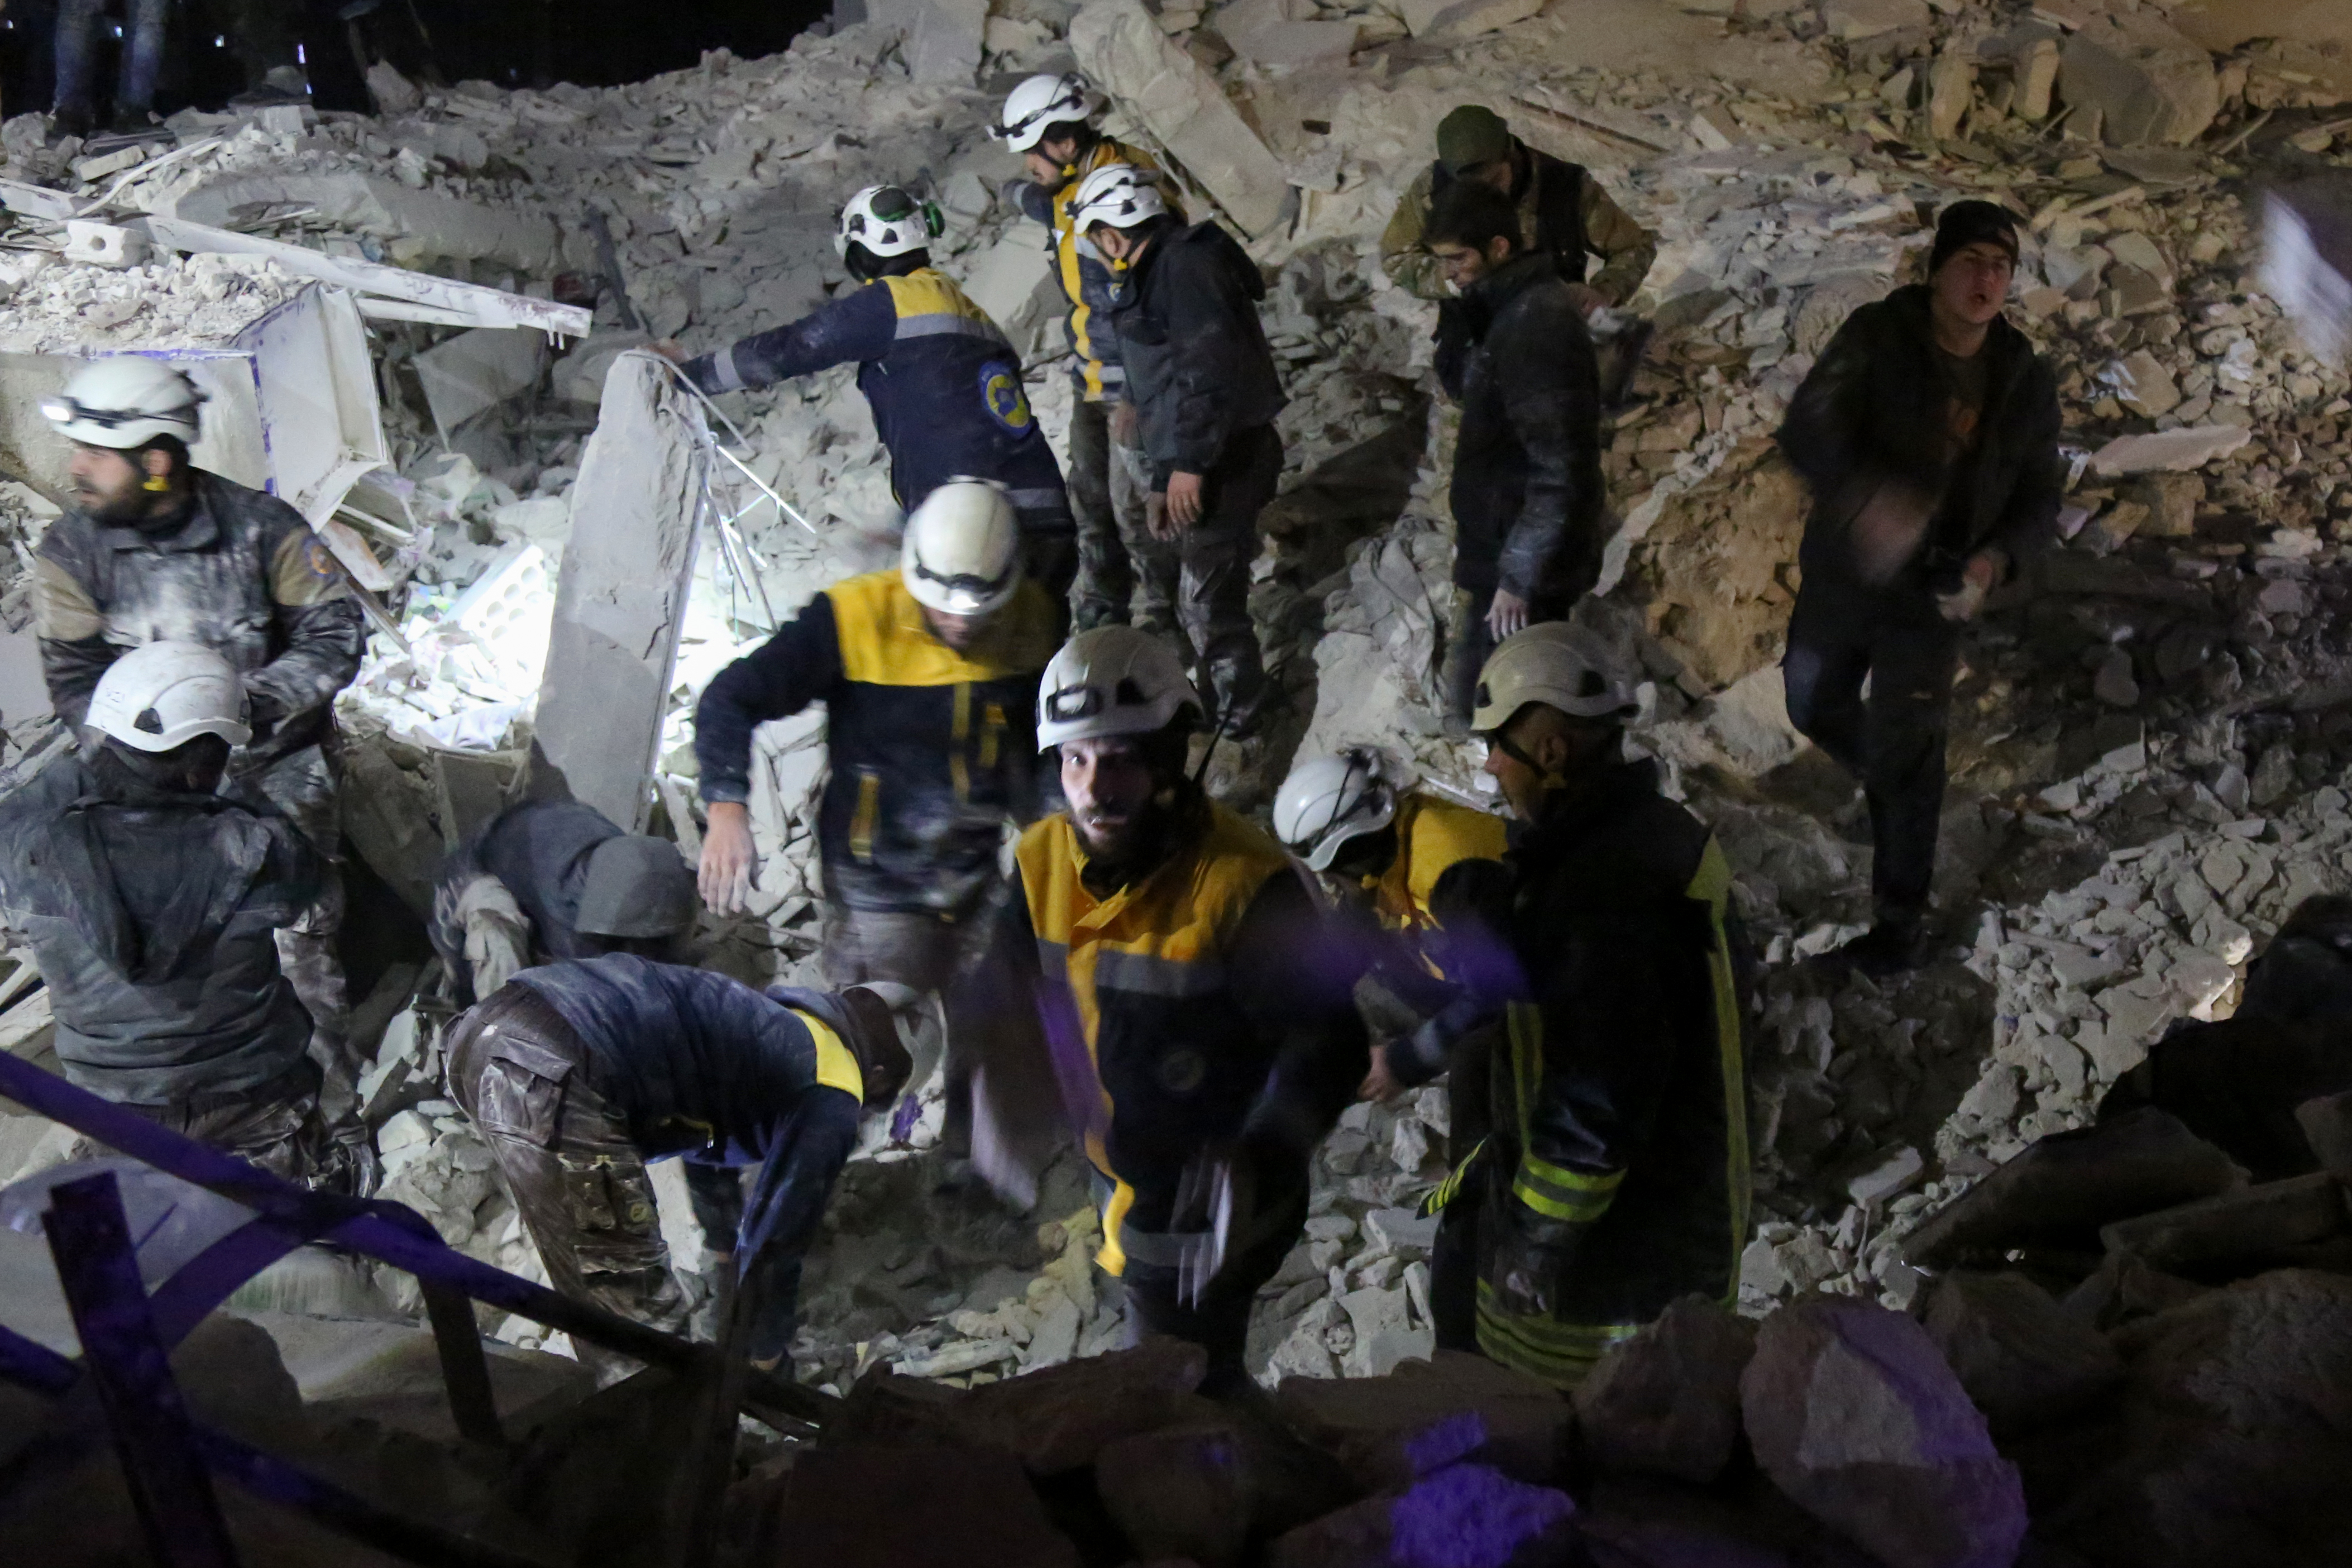 Syrian emergency personnel search for victims following an explosion at a base for Asian jihadists in a rebel-held area of the northwestern city of Idlib, Jan. 7, 2018.